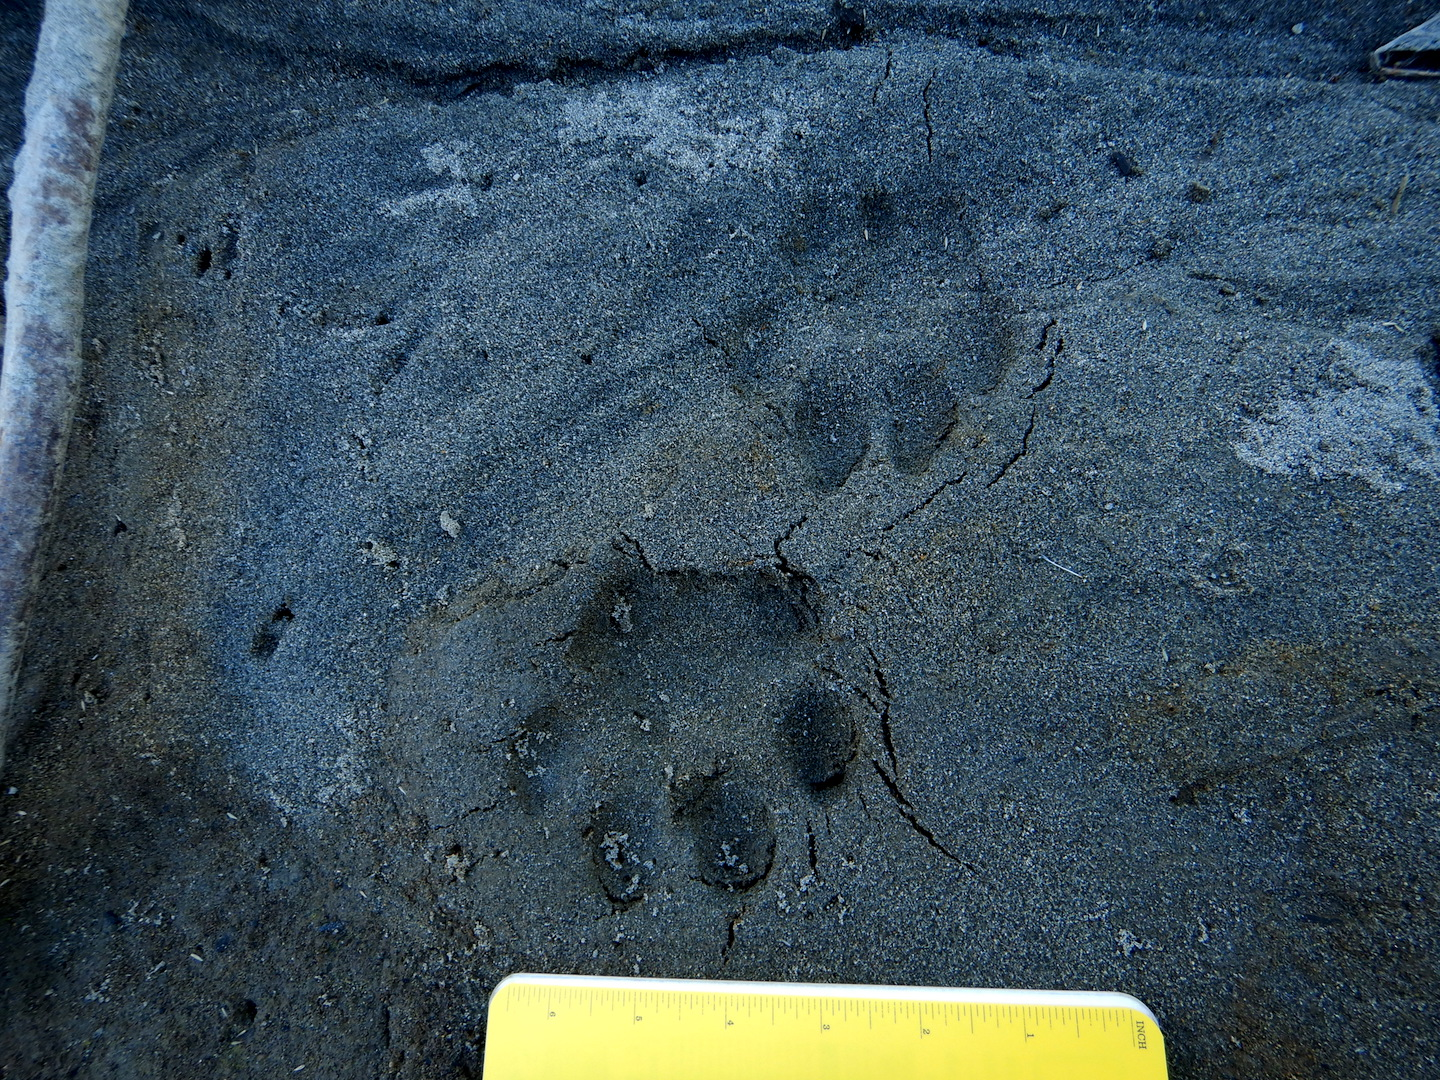 mountain lion tracks in sand. tracks point towards notebook at bottom of photo. Notebook is approximately 7 inches wide.